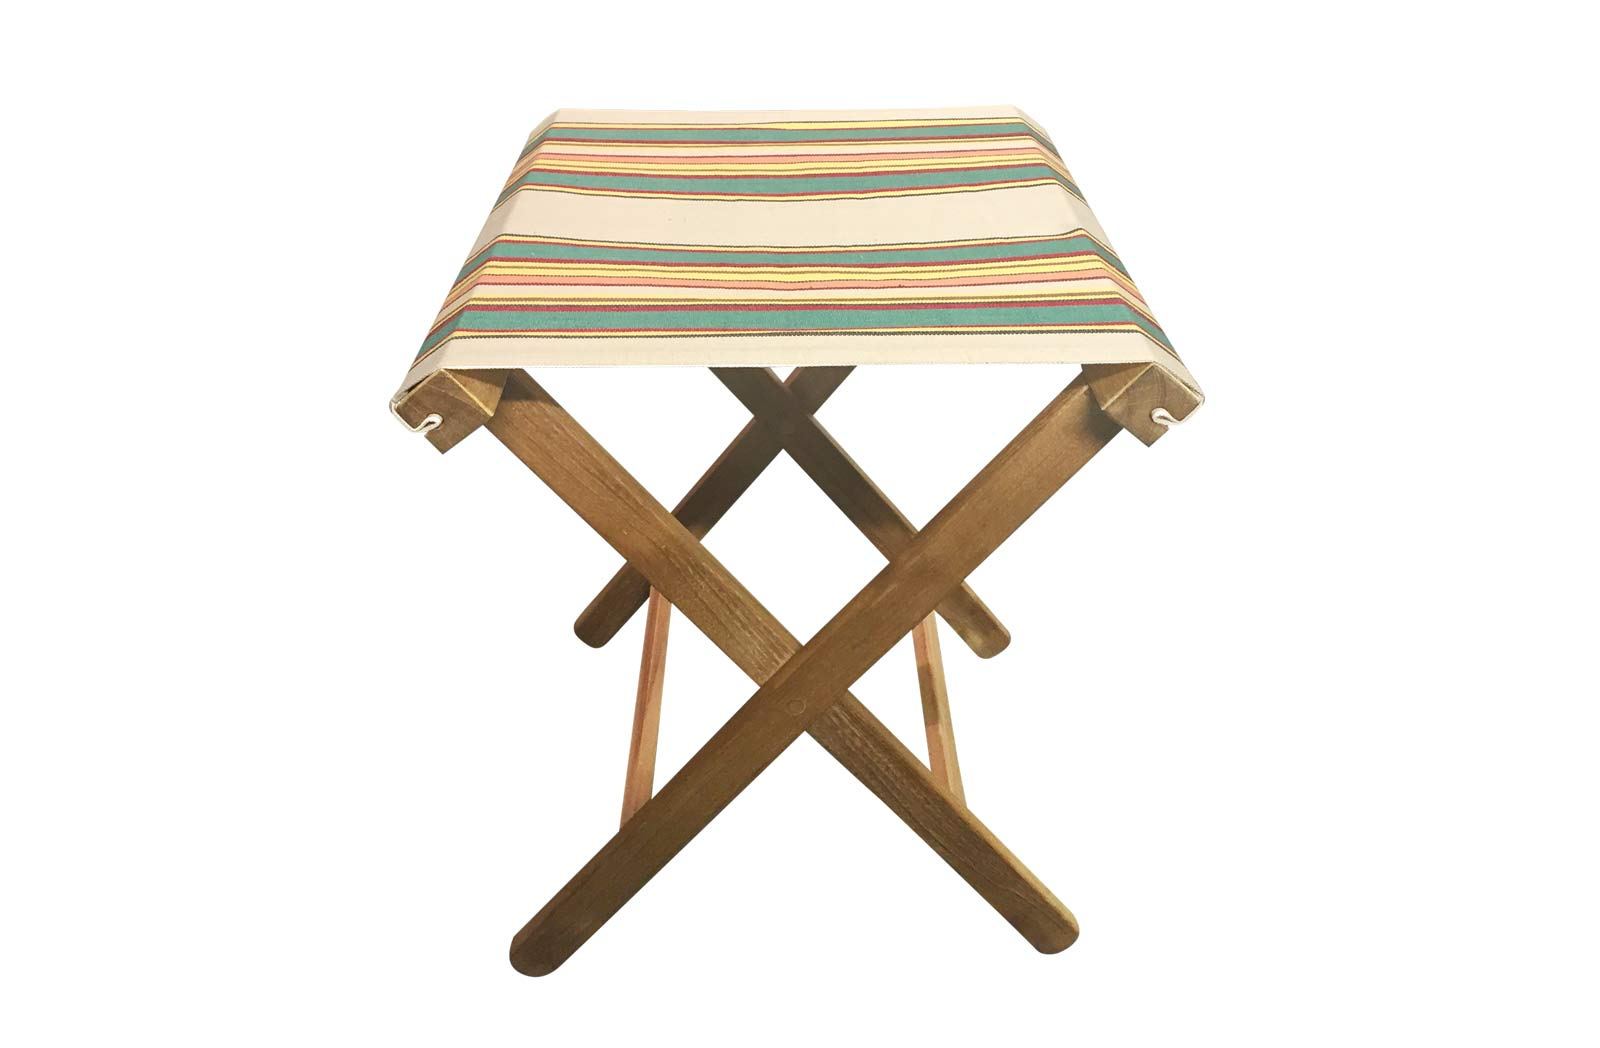 beige, jade green, red - Portable Folding Stools with Striped Seats